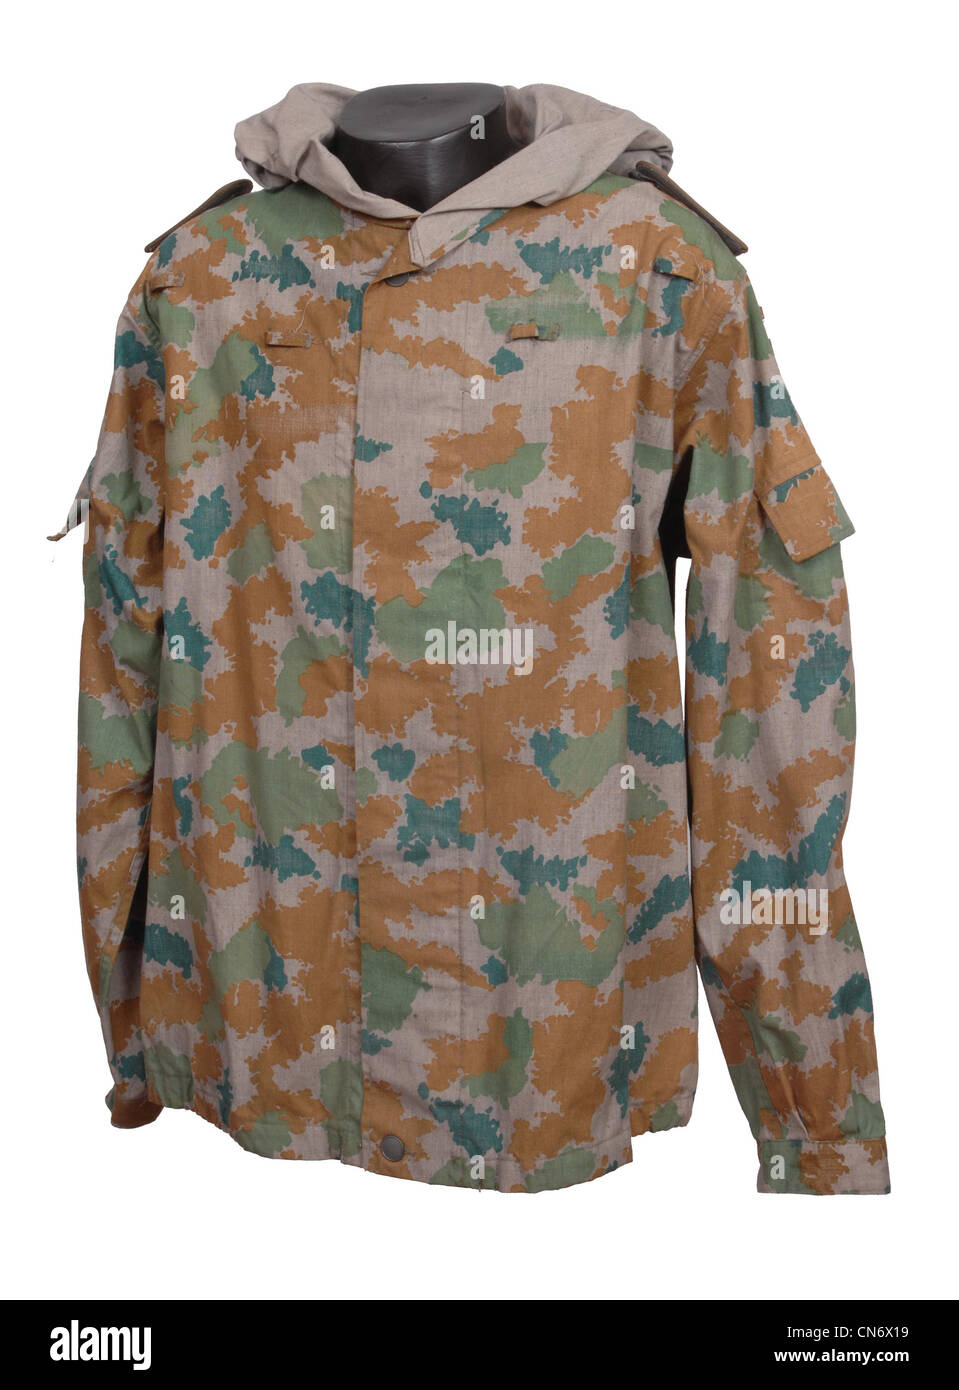 Camouflage clothing as used by military forces. Early NVA East German DDR Blumentarn camo smock - Stock Image